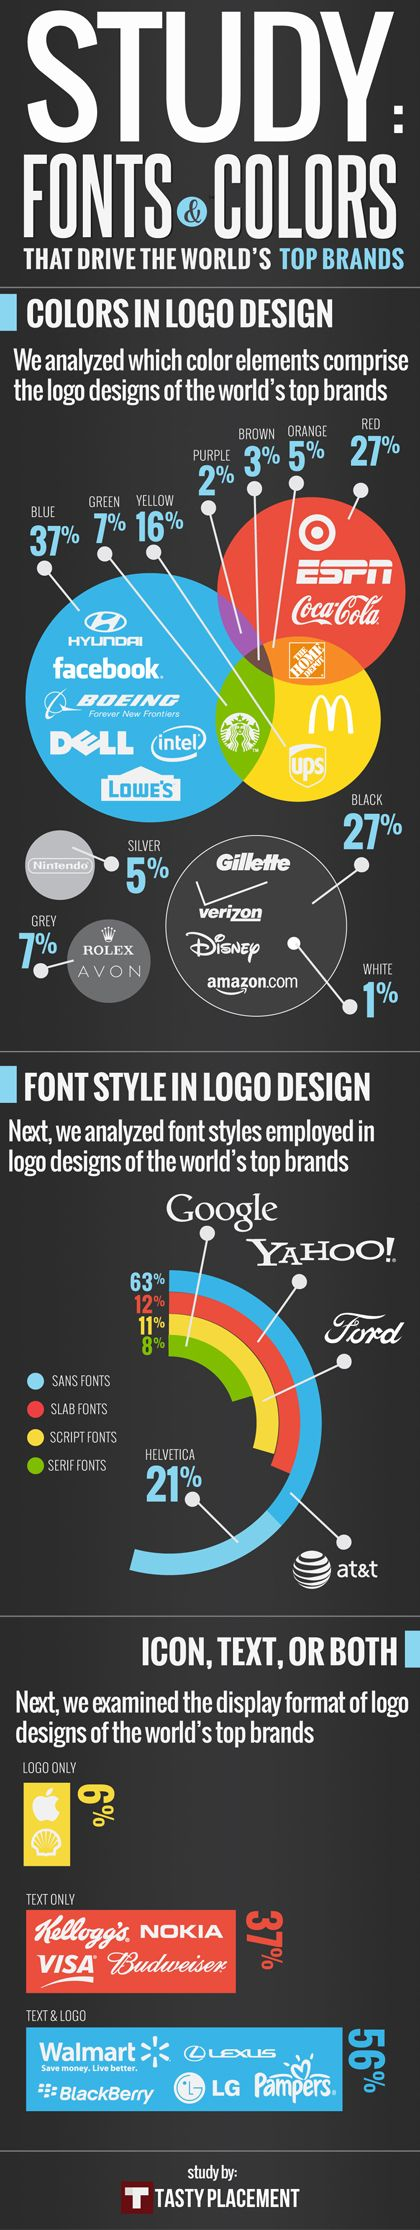 Infographic: Fonts & Colors That Drive the World's Top Brands